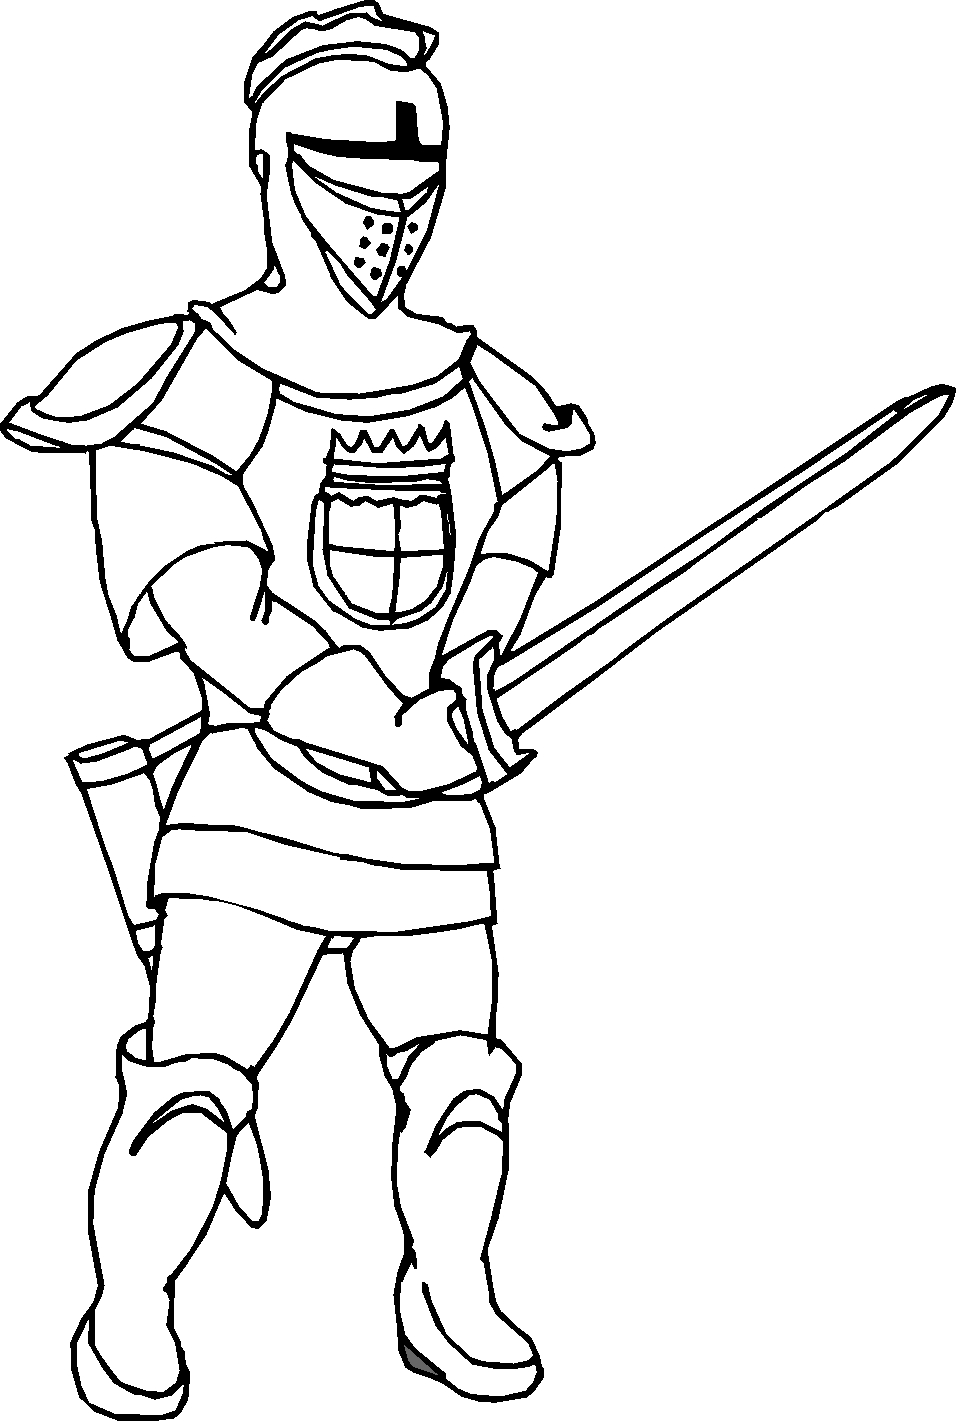 knight coloring pages - r=with knights horses